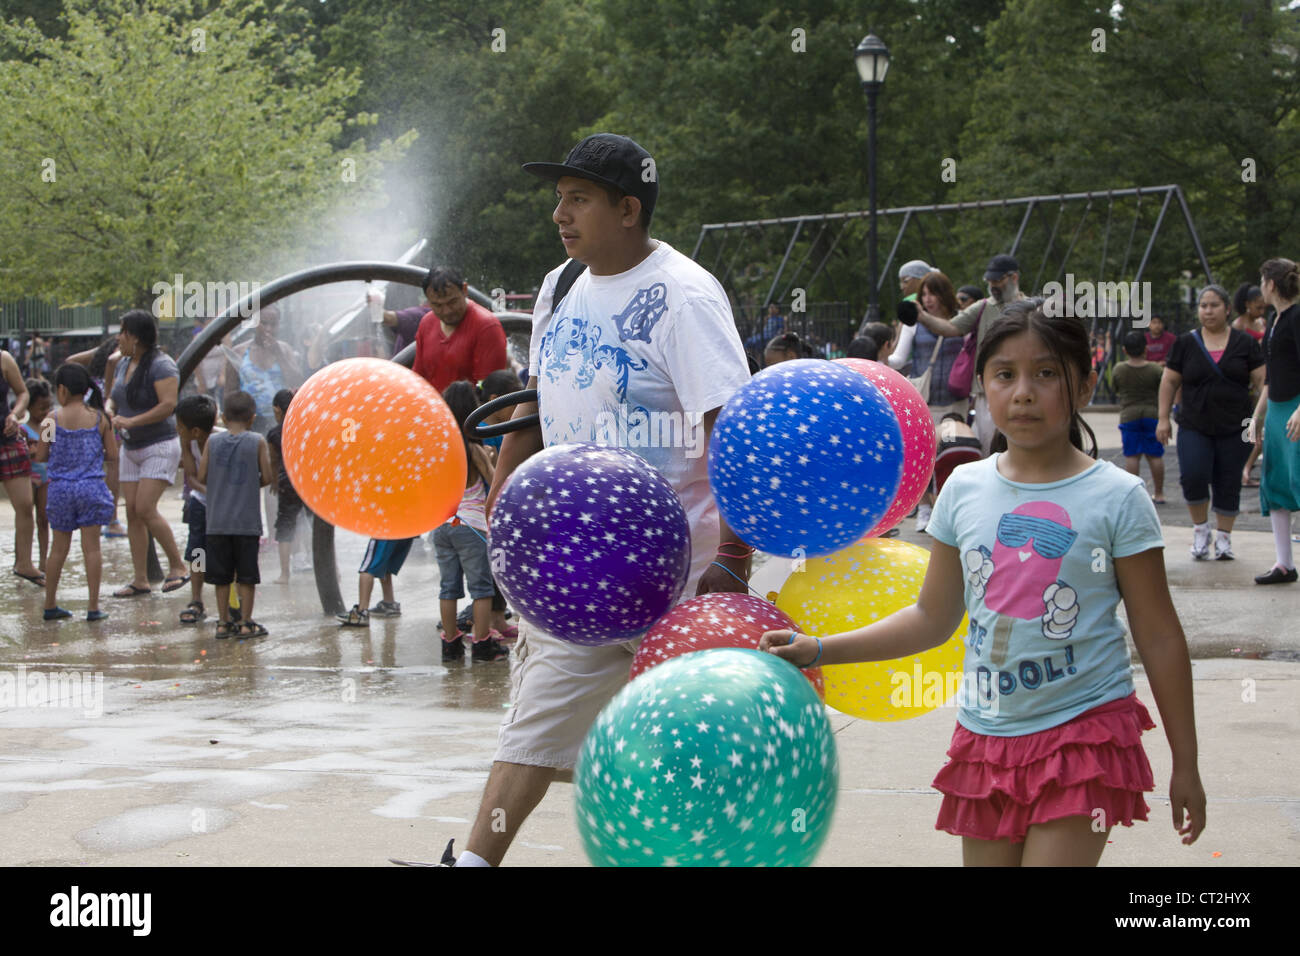 Children as well as adults cool off in the water area of a playground in Prospect Park, Brooklyn, NY on a hot summer - Stock Image